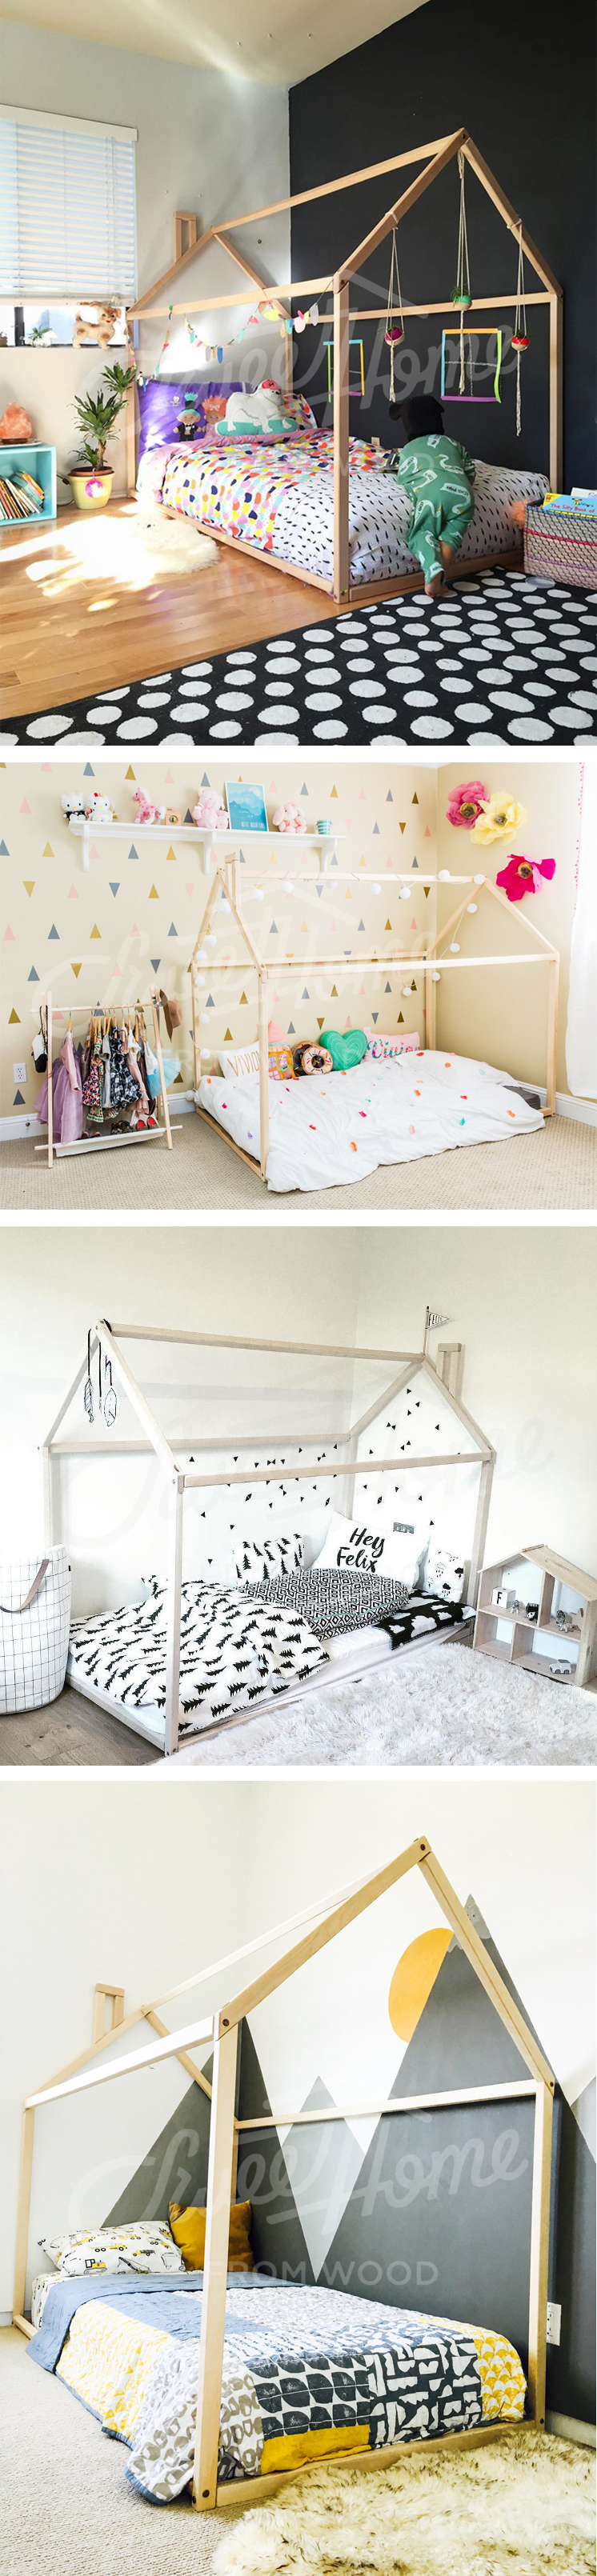 Baby jasper bed brackets - Toddler Bed House Bed Tent Bed Children Bed Wooden House Wood